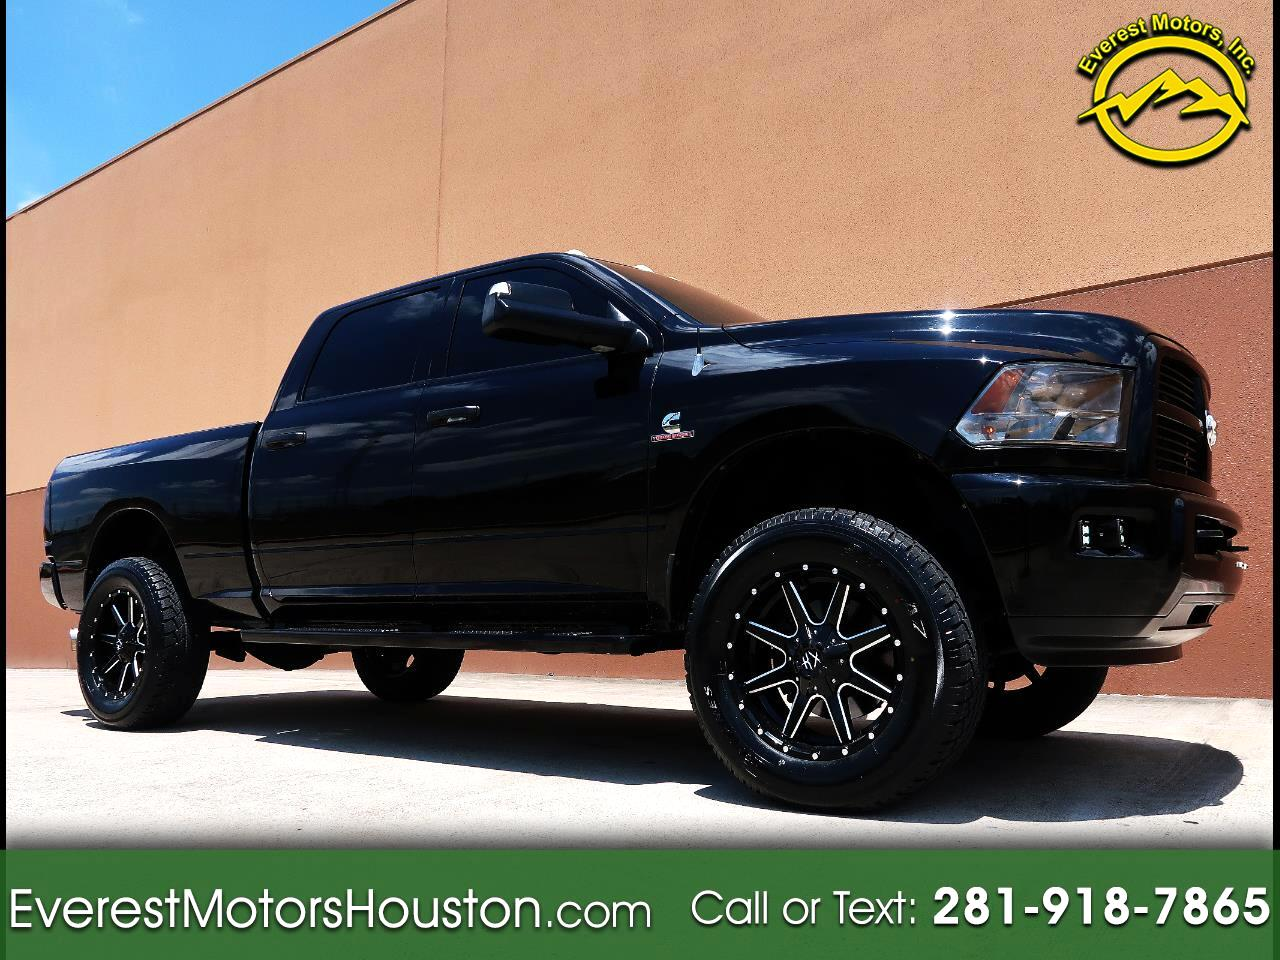 2012 Dodge Ram 2500 ST CREW CAB SHORT BED 4WD